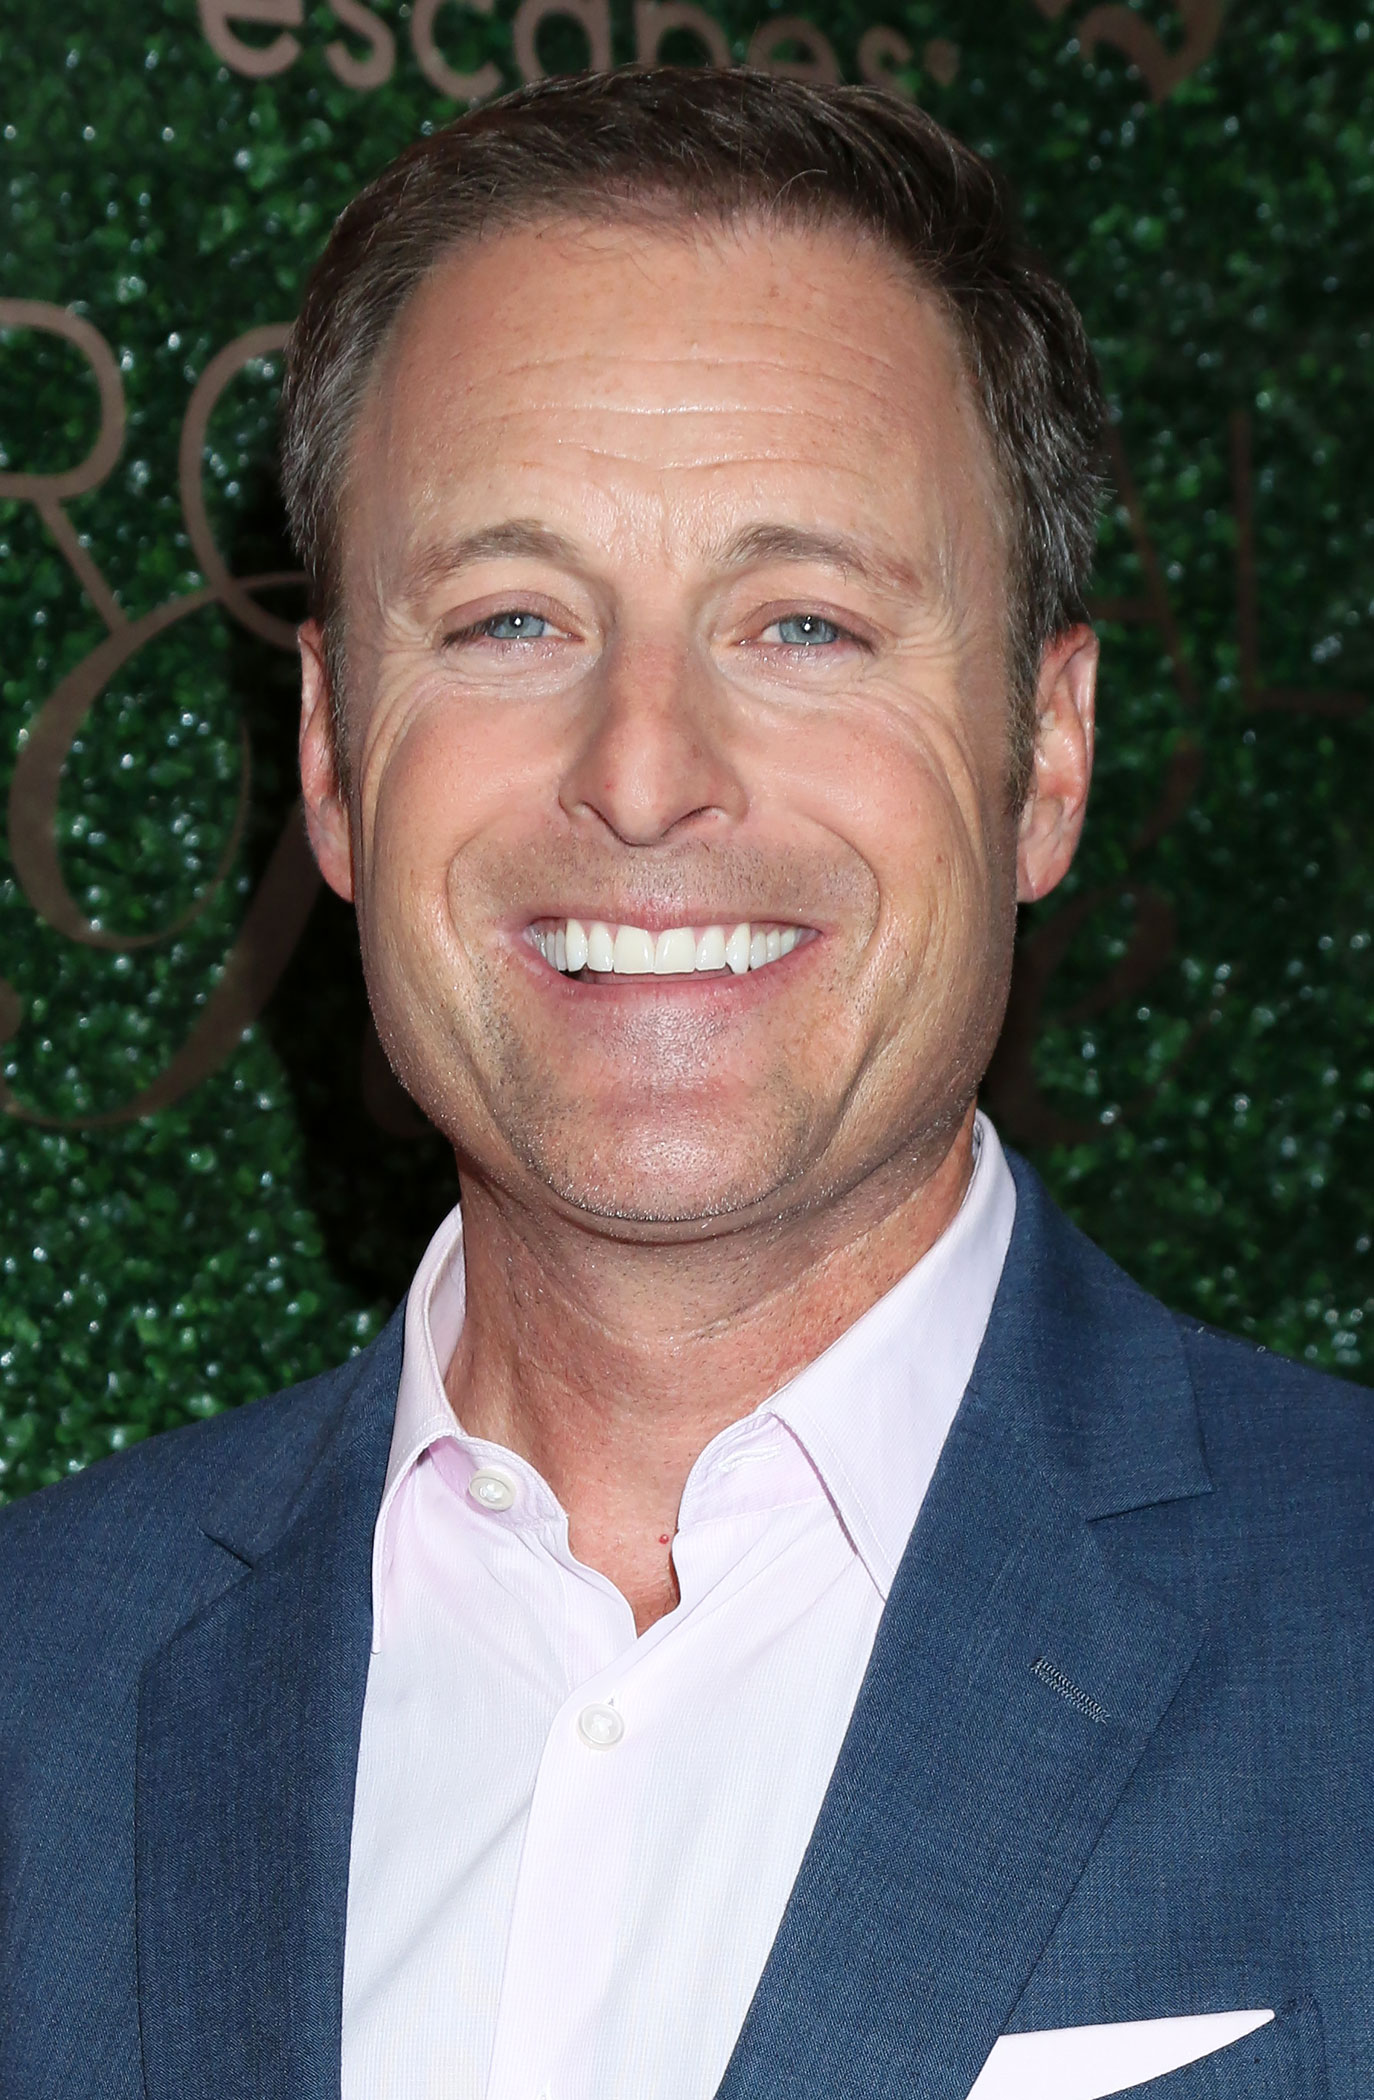 Kaitlyn Bristowe Calls Chris Harrison 'Irreplaceable' After 'Bachelor' Exit